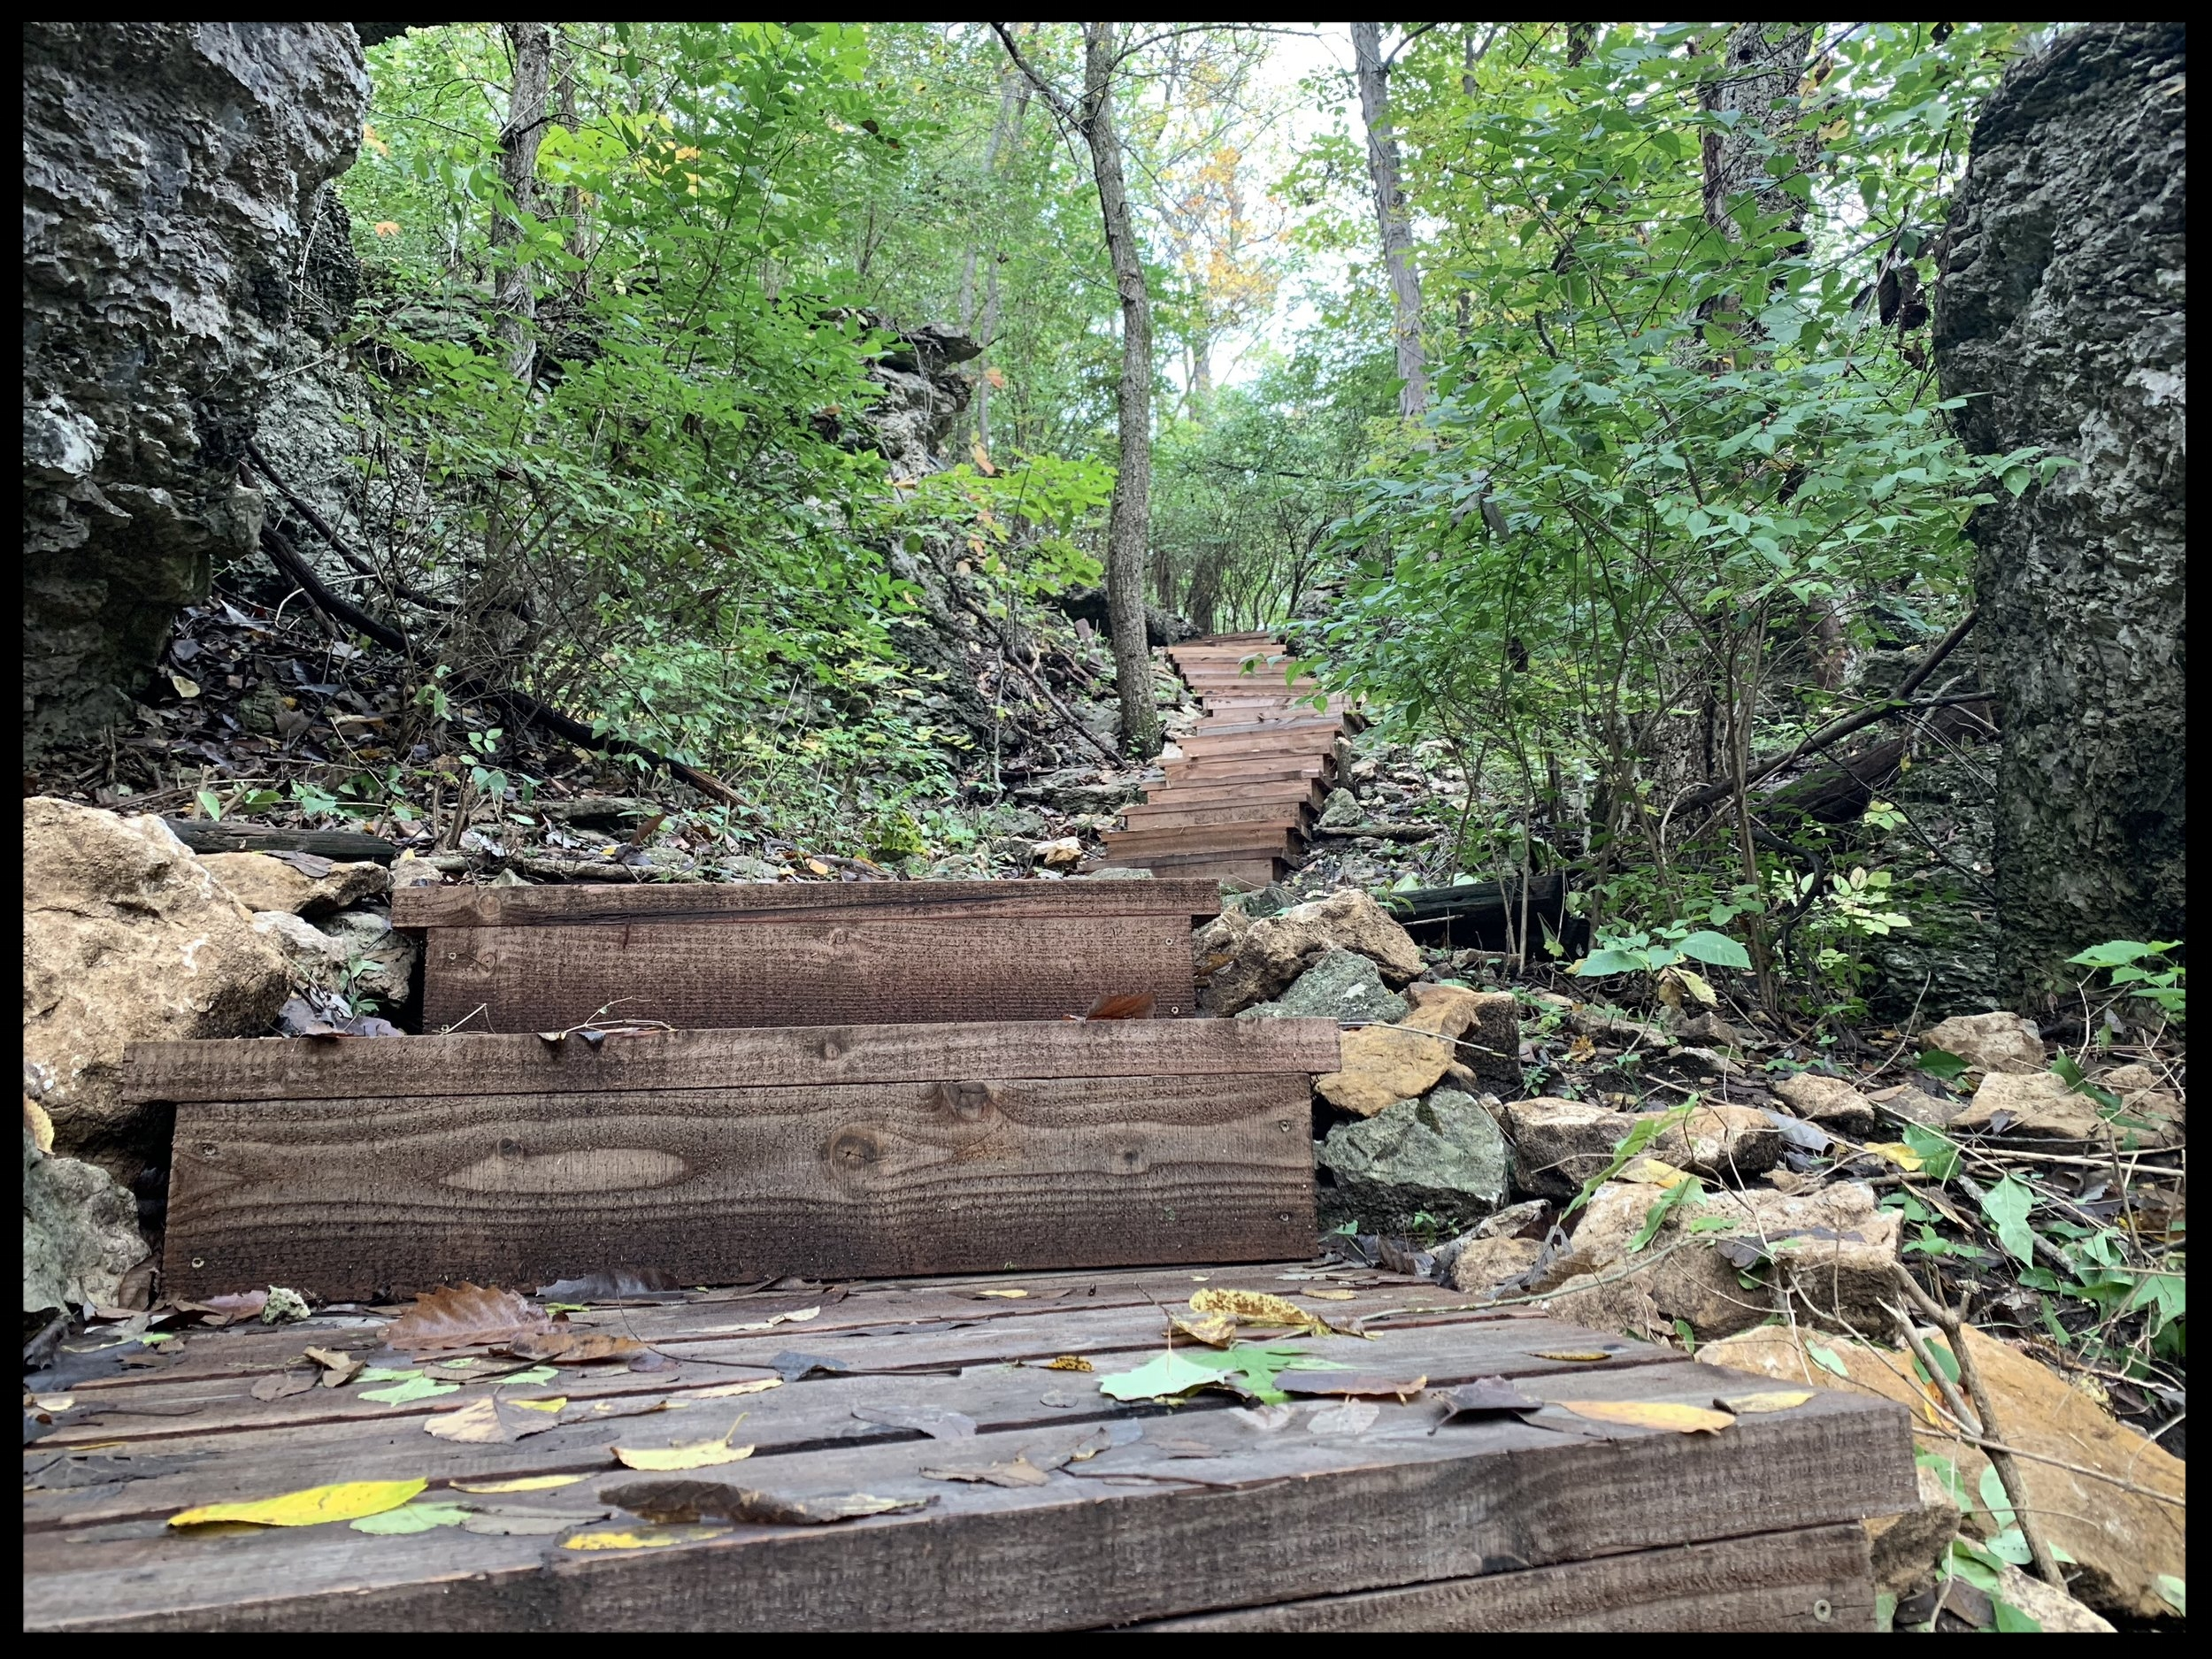 Walking Trails - OVER 9 MILES ON WHICH TO WANDERThe Neighborhoods of Winterset boast over 9 miles of walking trails through naturally beautiful wooded areas. There are also numerous